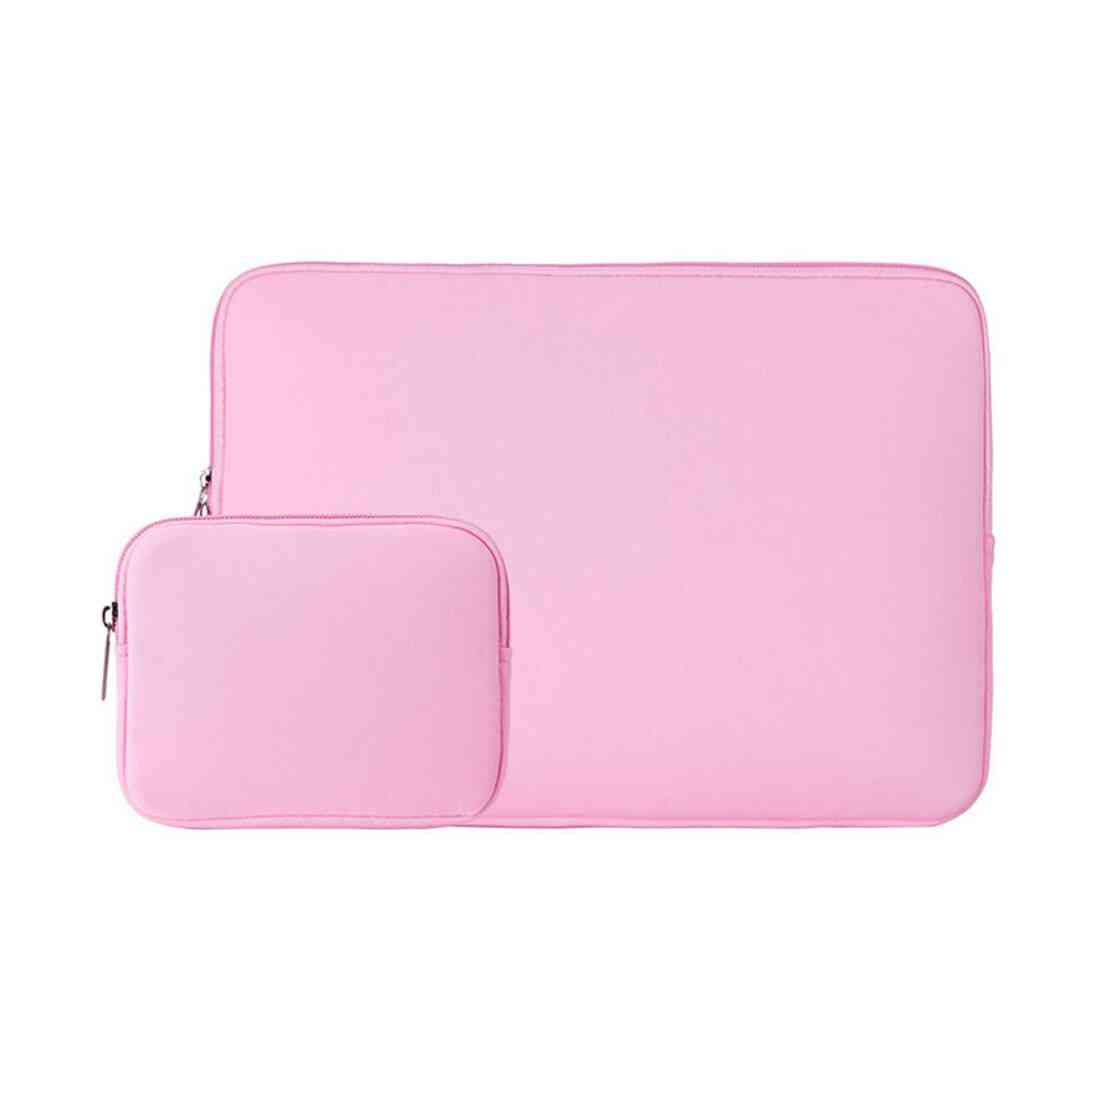 Laptop Notebook Case Tablet Cover Bag For Macbook Air Pro